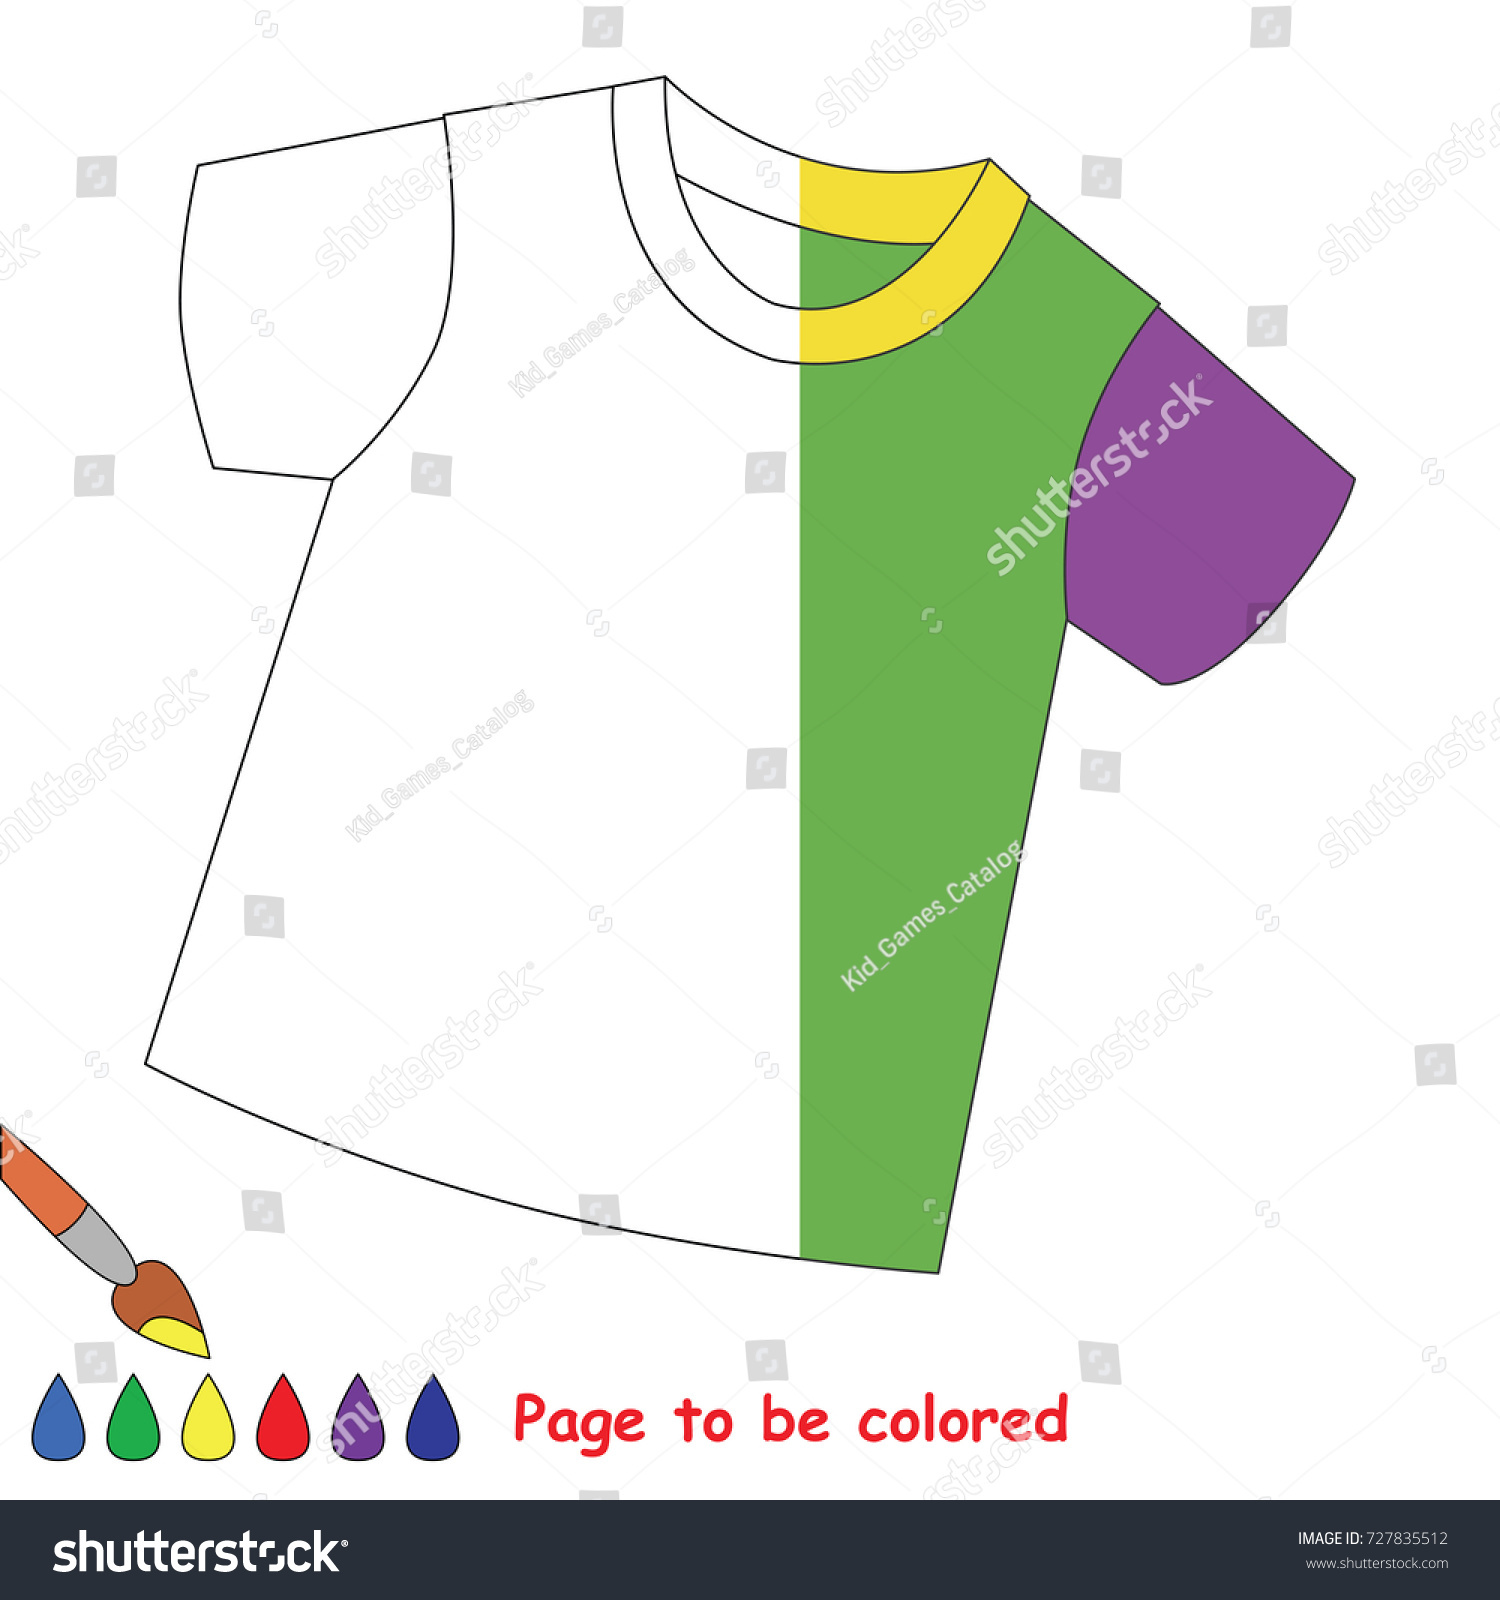 t shirt the coloring book to educate preschool kids with easy gaming level